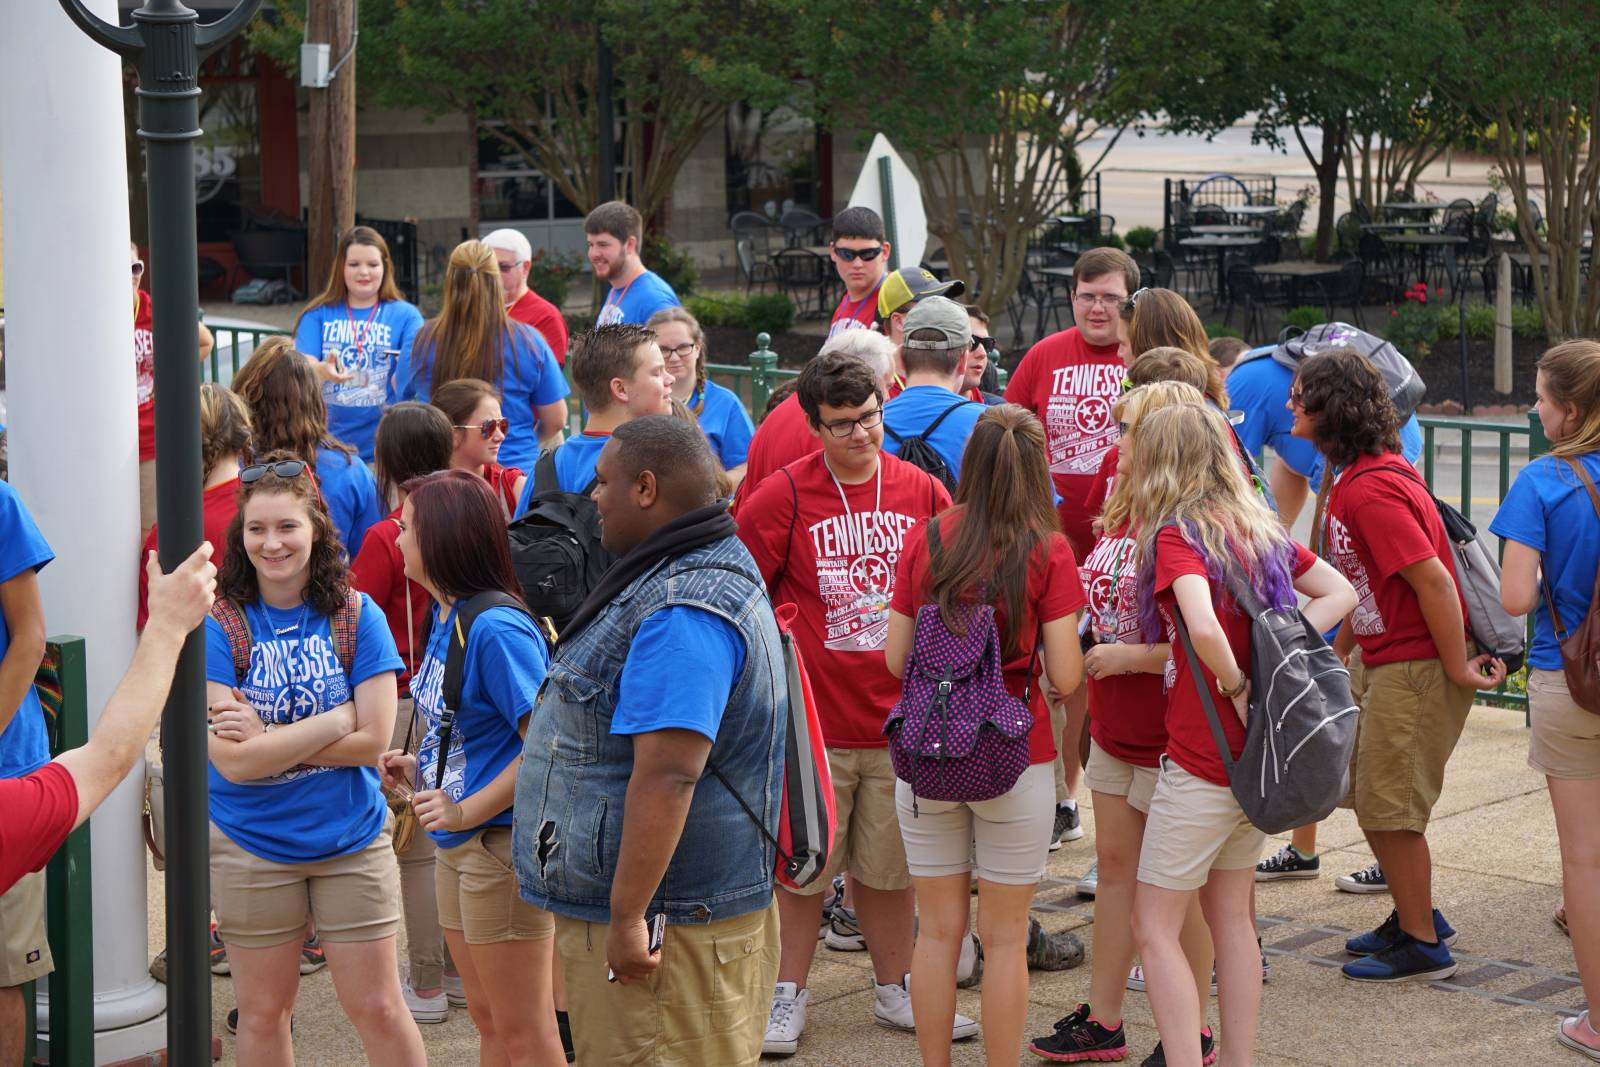 Members of the youth choir prepare to sing during the tour of Tennessee.